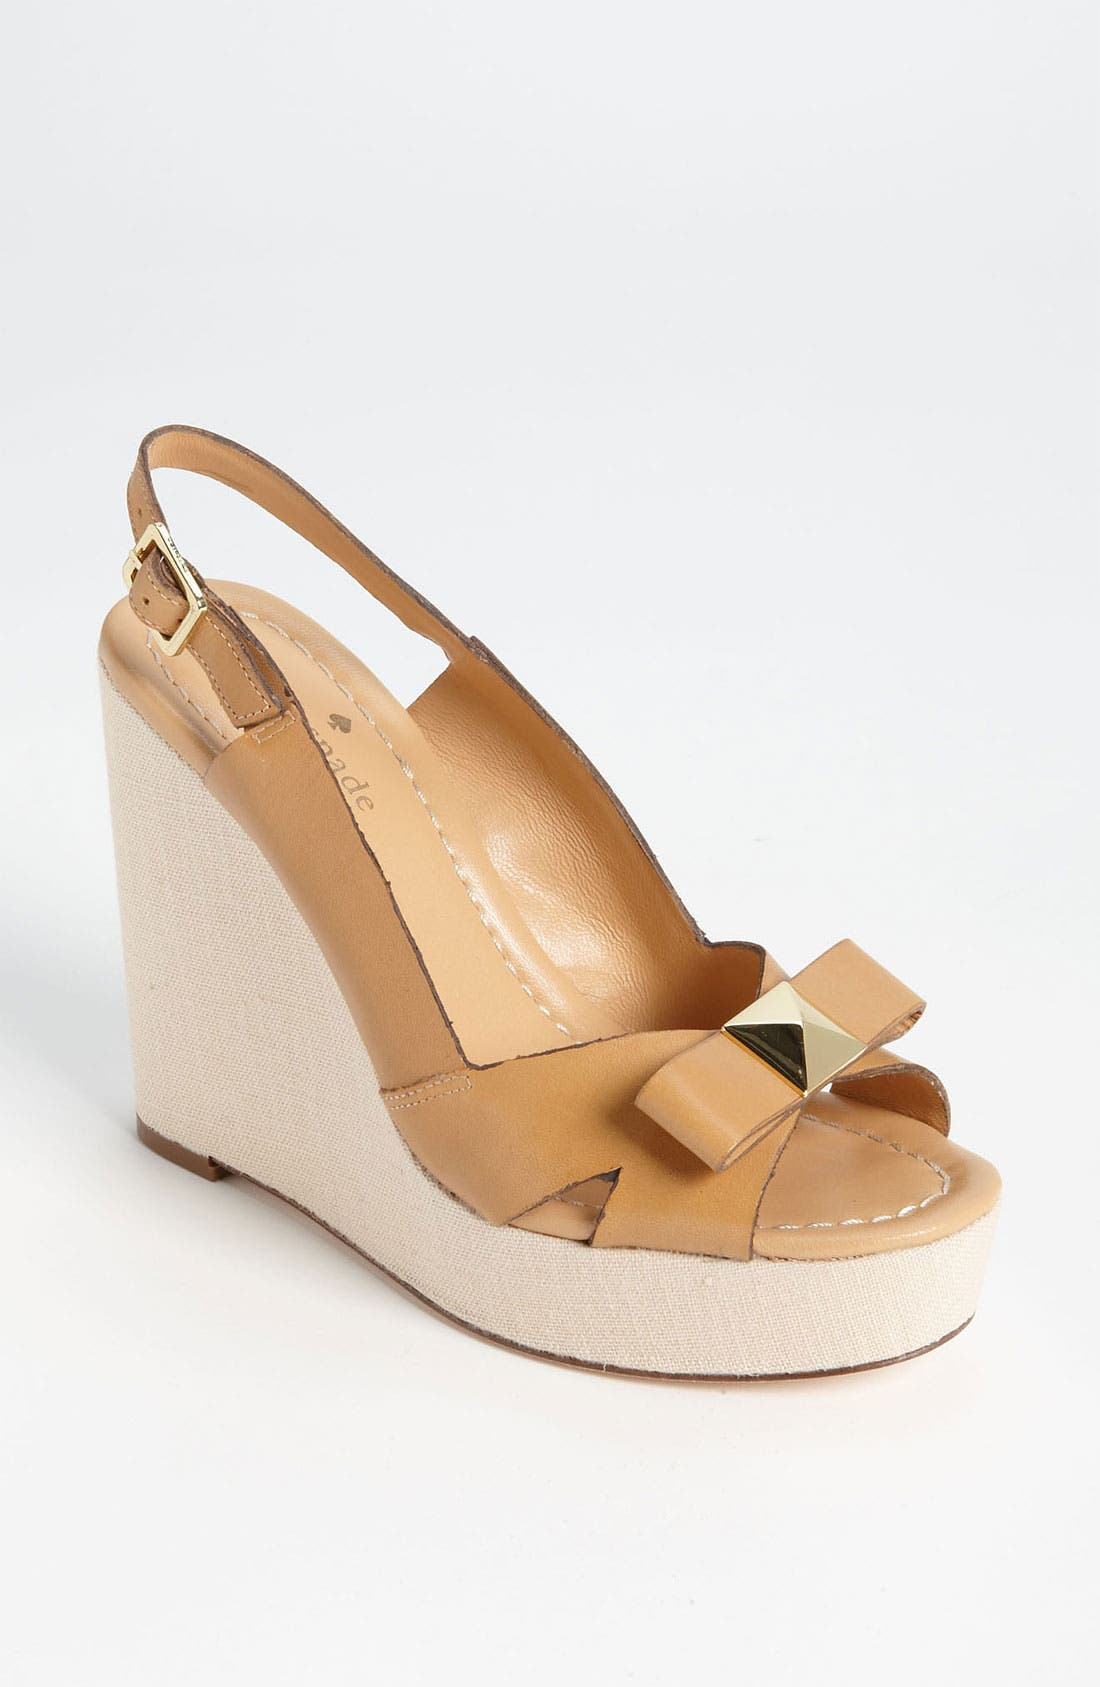 Main Image - kate spade new york 'devi' wedge sandal